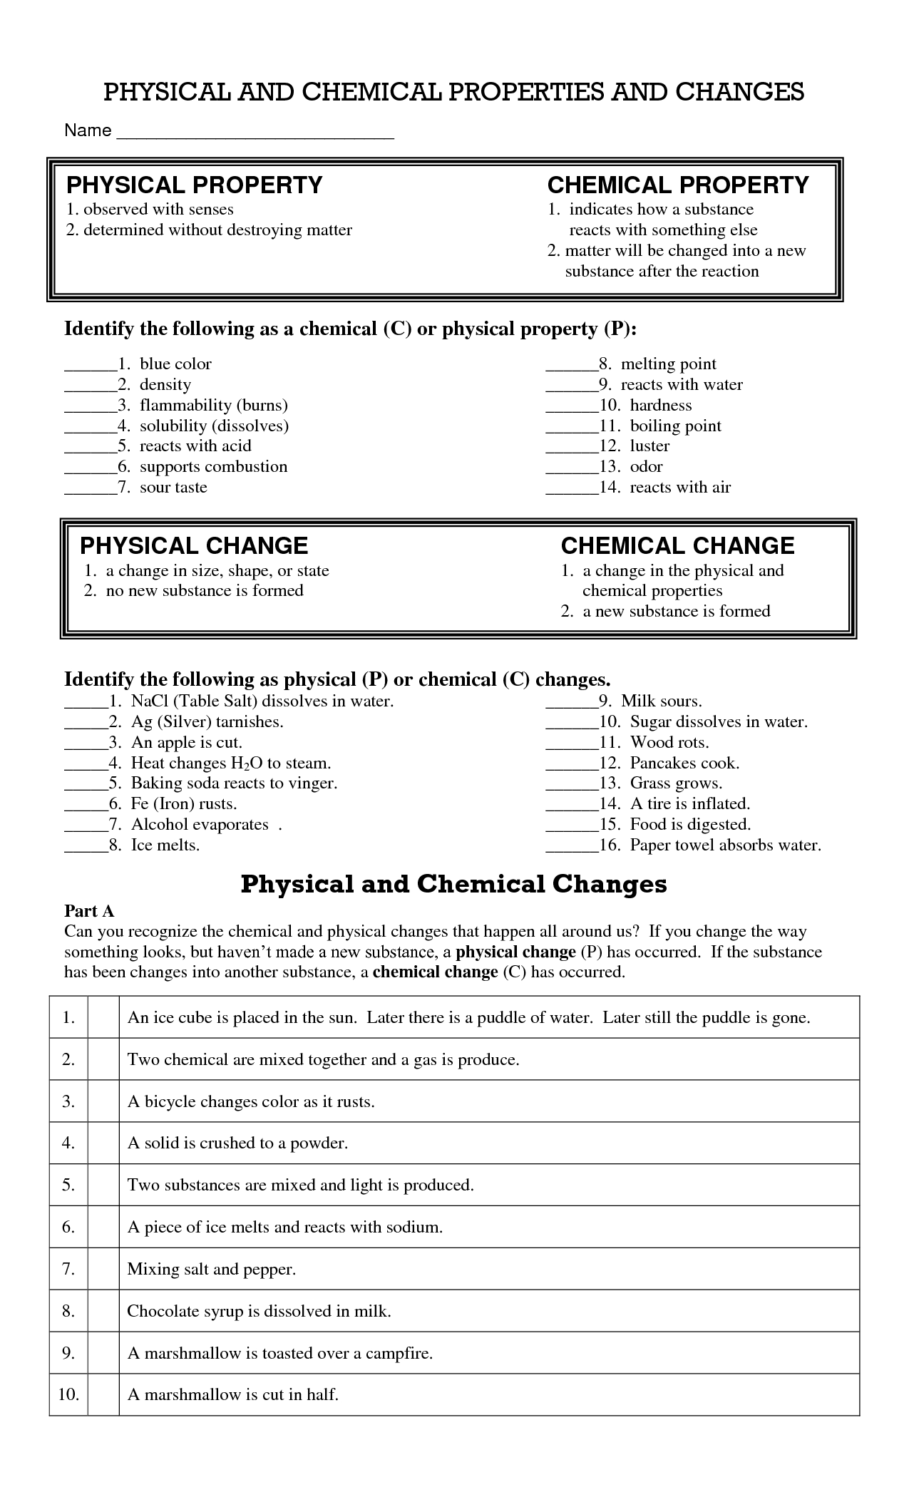 Proficiency Worksheet Physical And Chemical Changes Chemical And